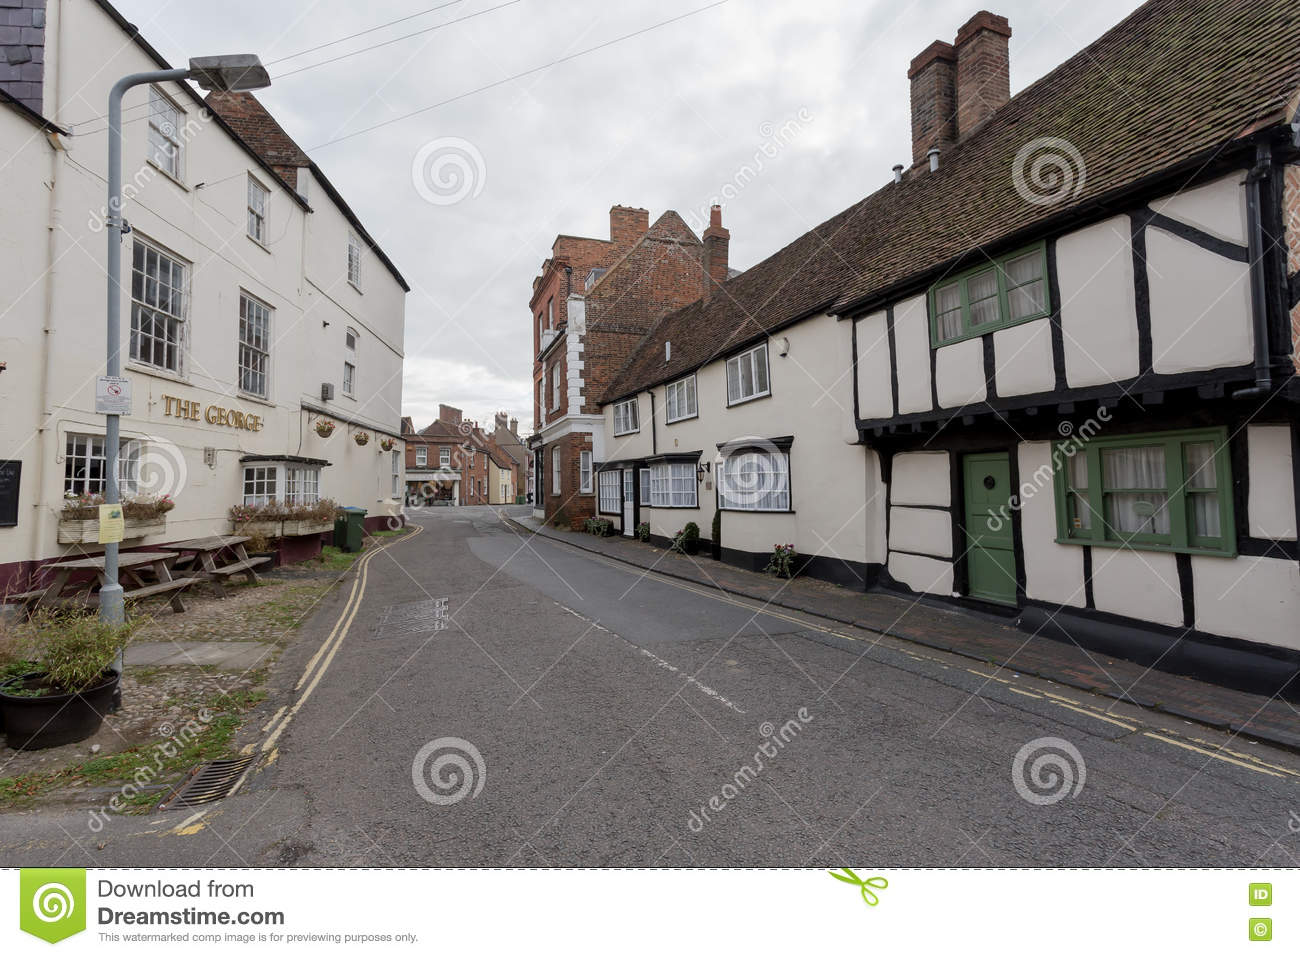 Winslow, Buckinghamshire, United Kingdom, October 25, 2016: Cottages and Pub The George Winslow on the Horn street on grey chilly